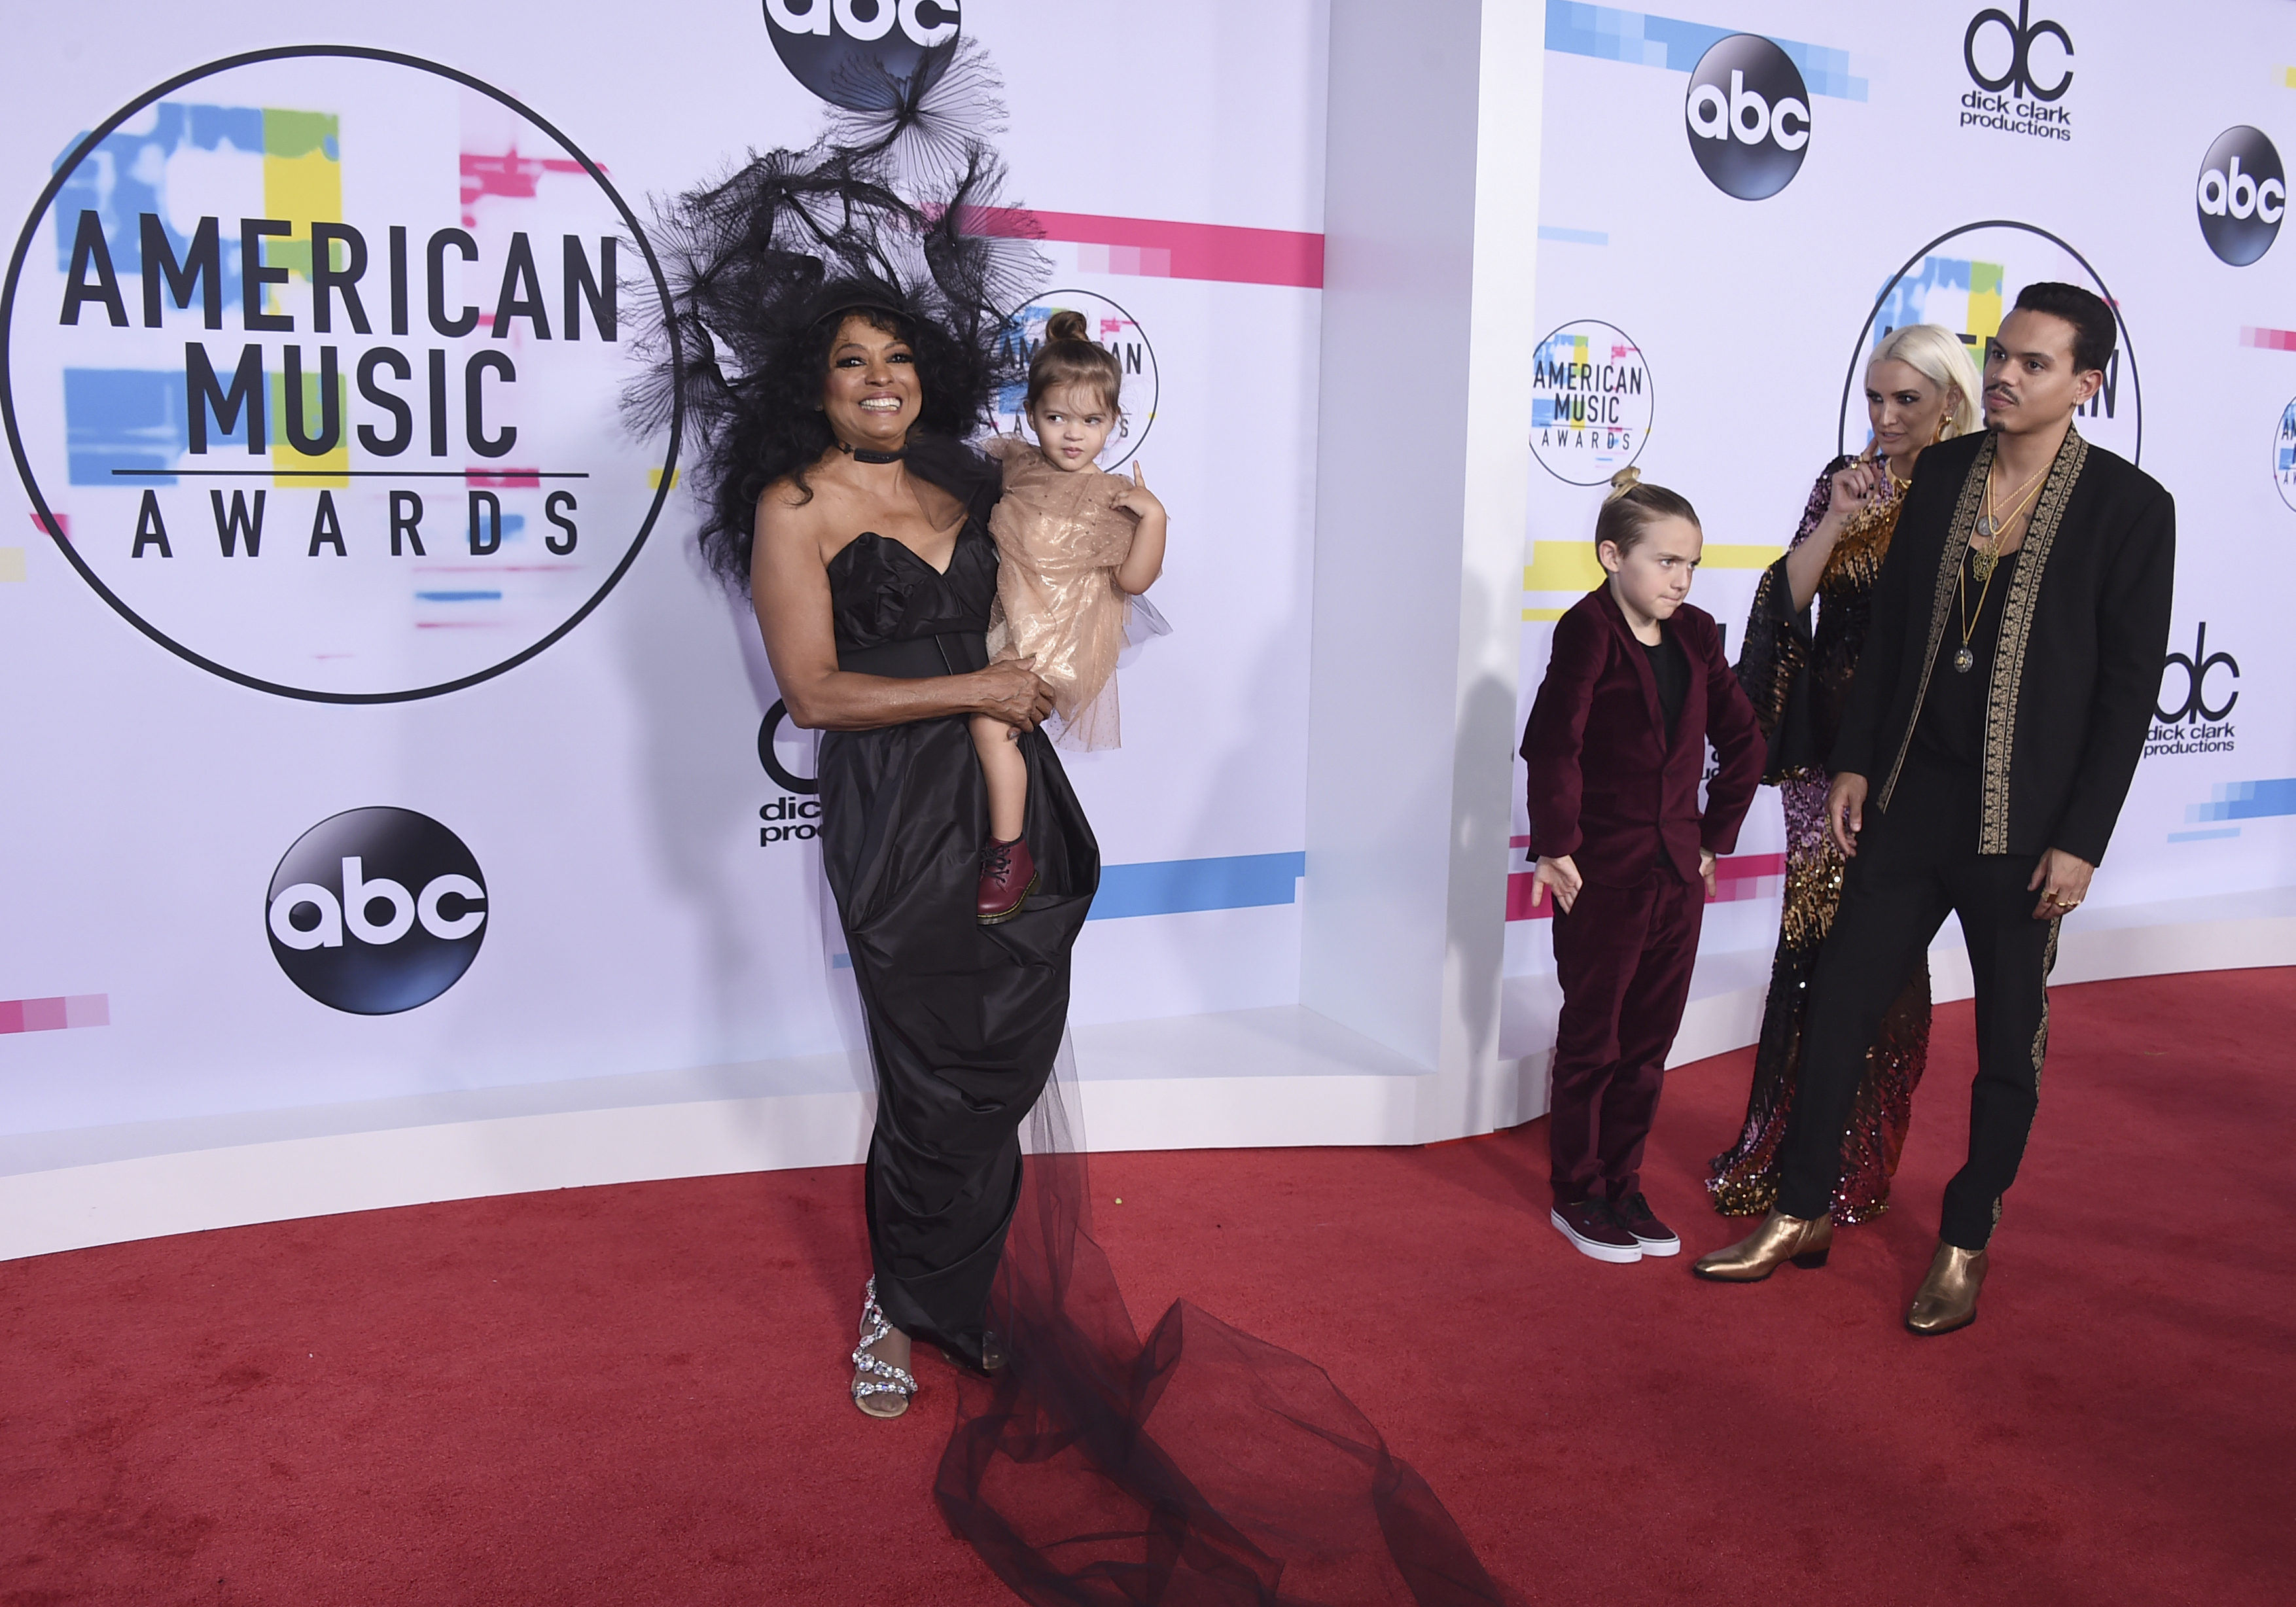 <div class='meta'><div class='origin-logo' data-origin='none'></div><span class='caption-text' data-credit='Jordan Strauss/Invision/AP'>Diana Ross, from left, Jagger Snow Ross, Bronx Mowgli Wentz, Ashlee Simpson, and Evan Ross arrive at the American Music Awards at the Microsoft Theater.</span></div>